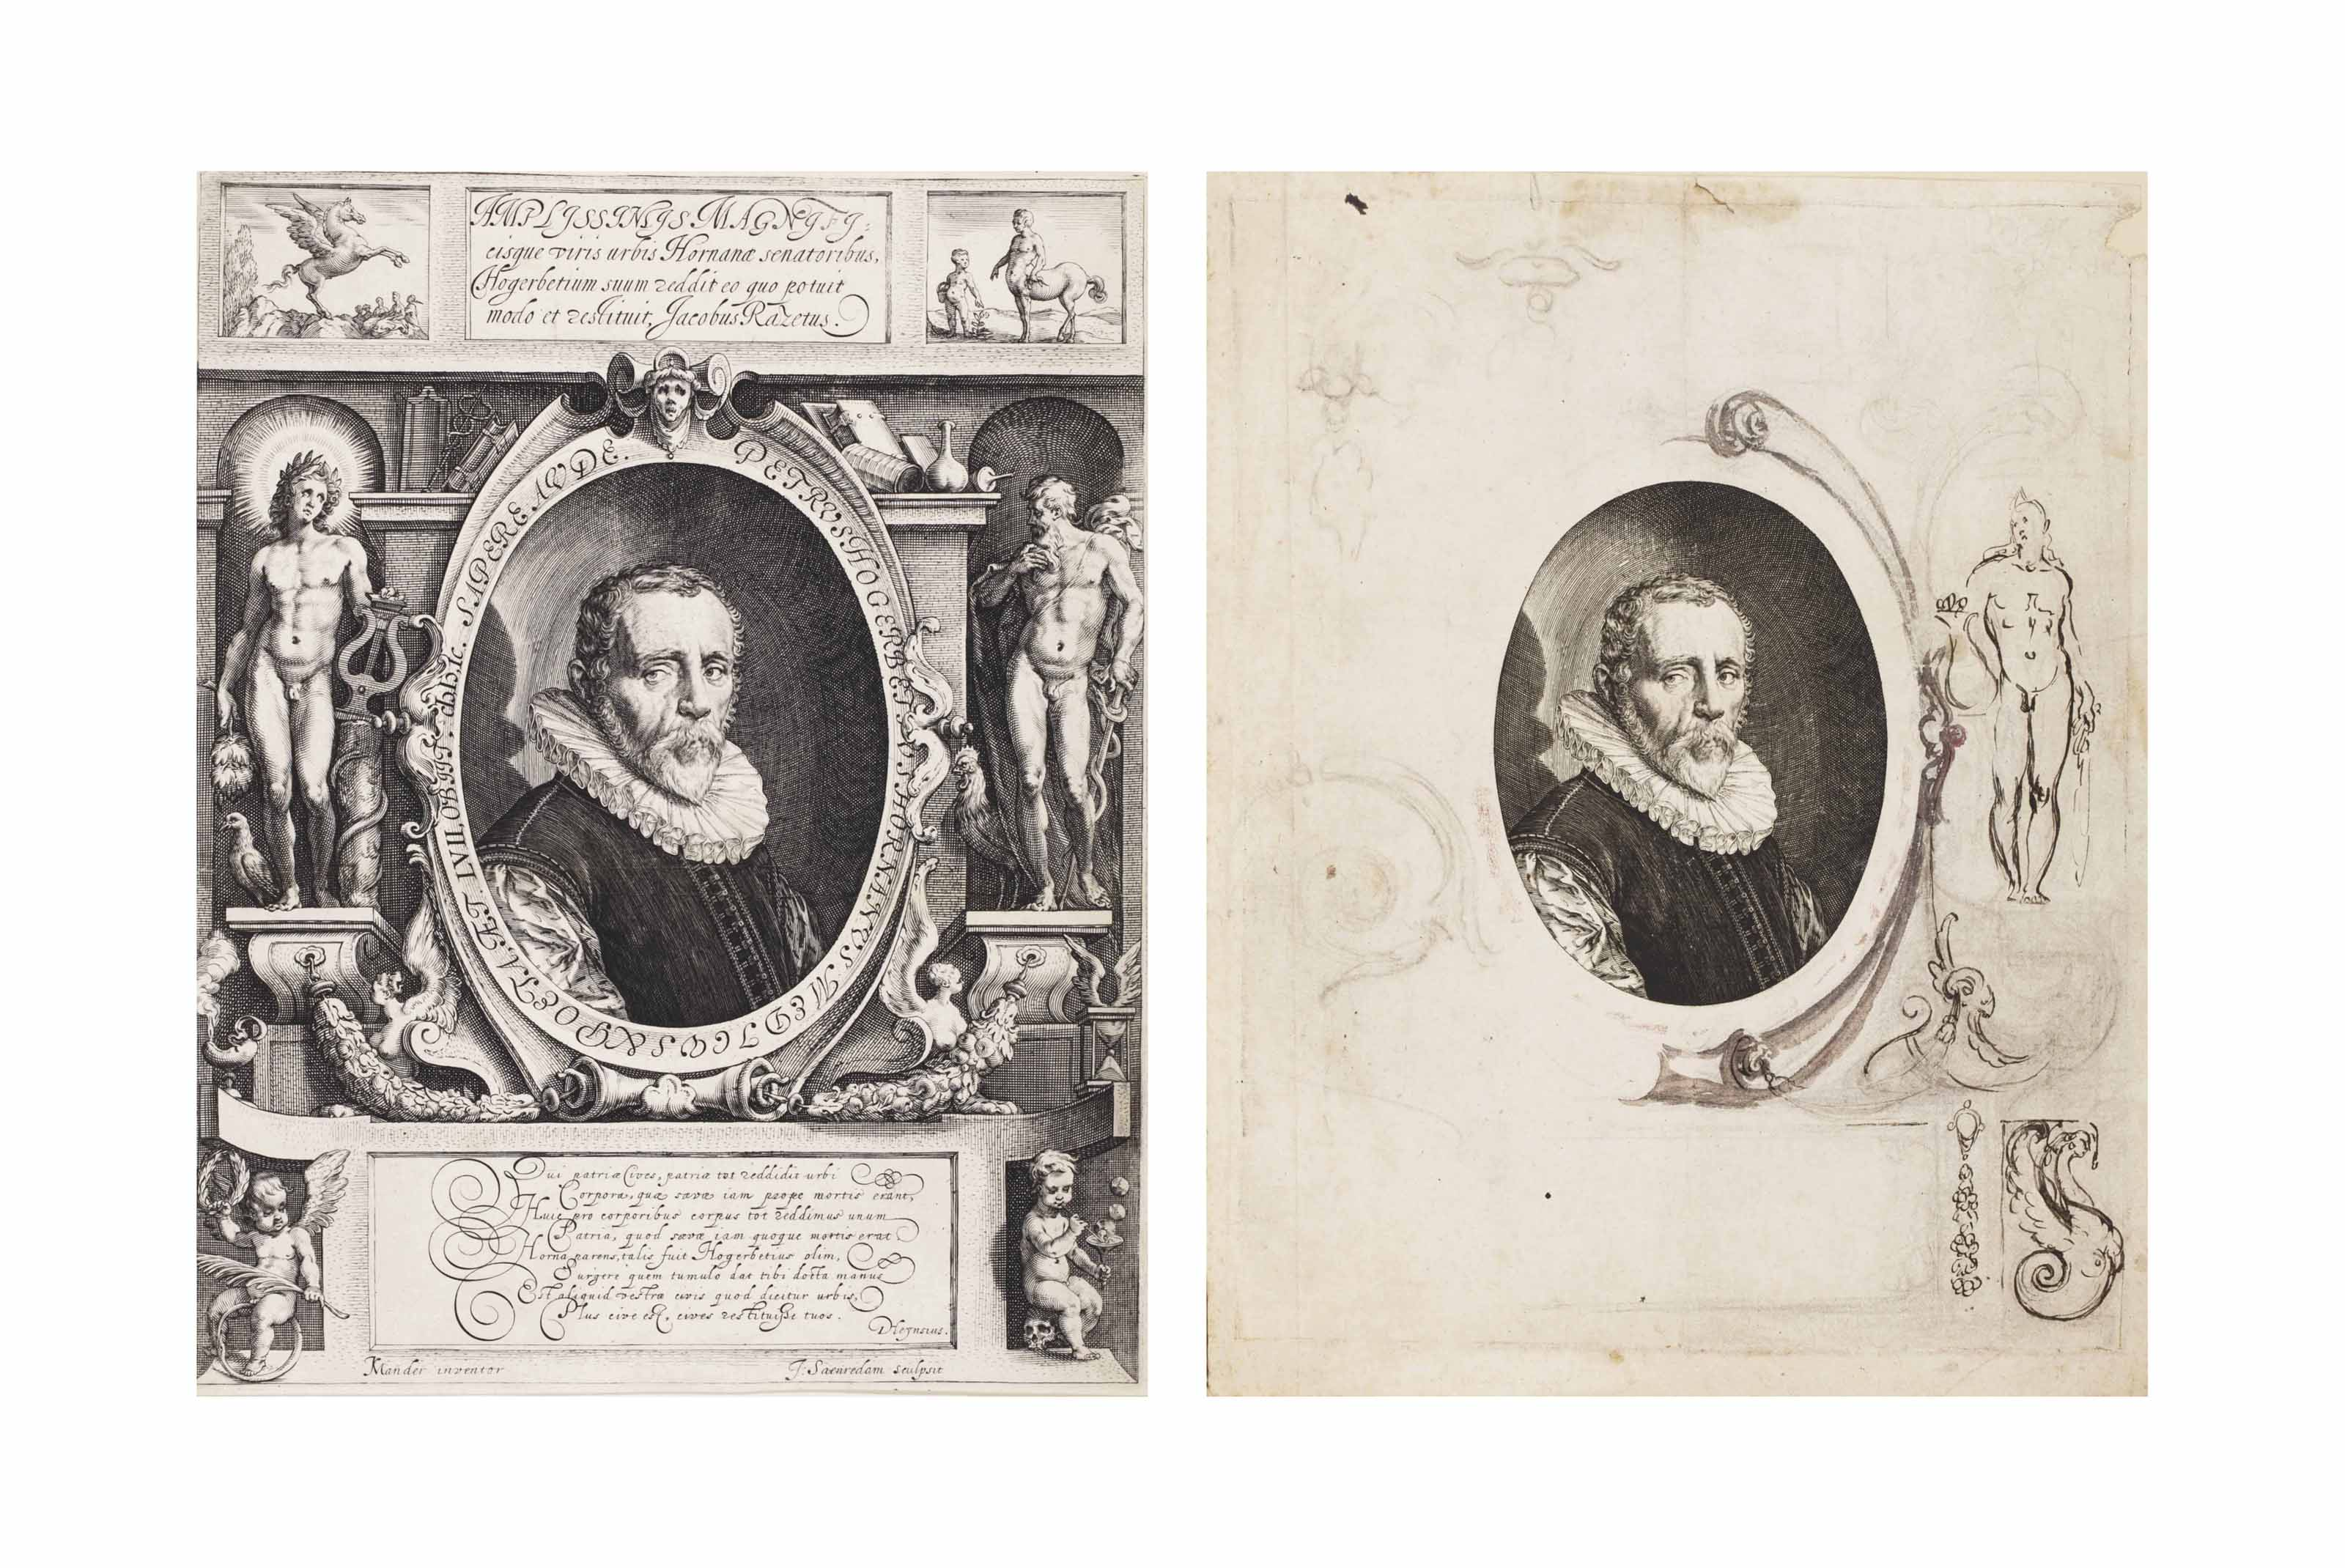 A proof impression of the engraved portrait of Pieter Hogerbeets by Jan Saenredam, with the design for part of the decorative surround at the right of the sheet